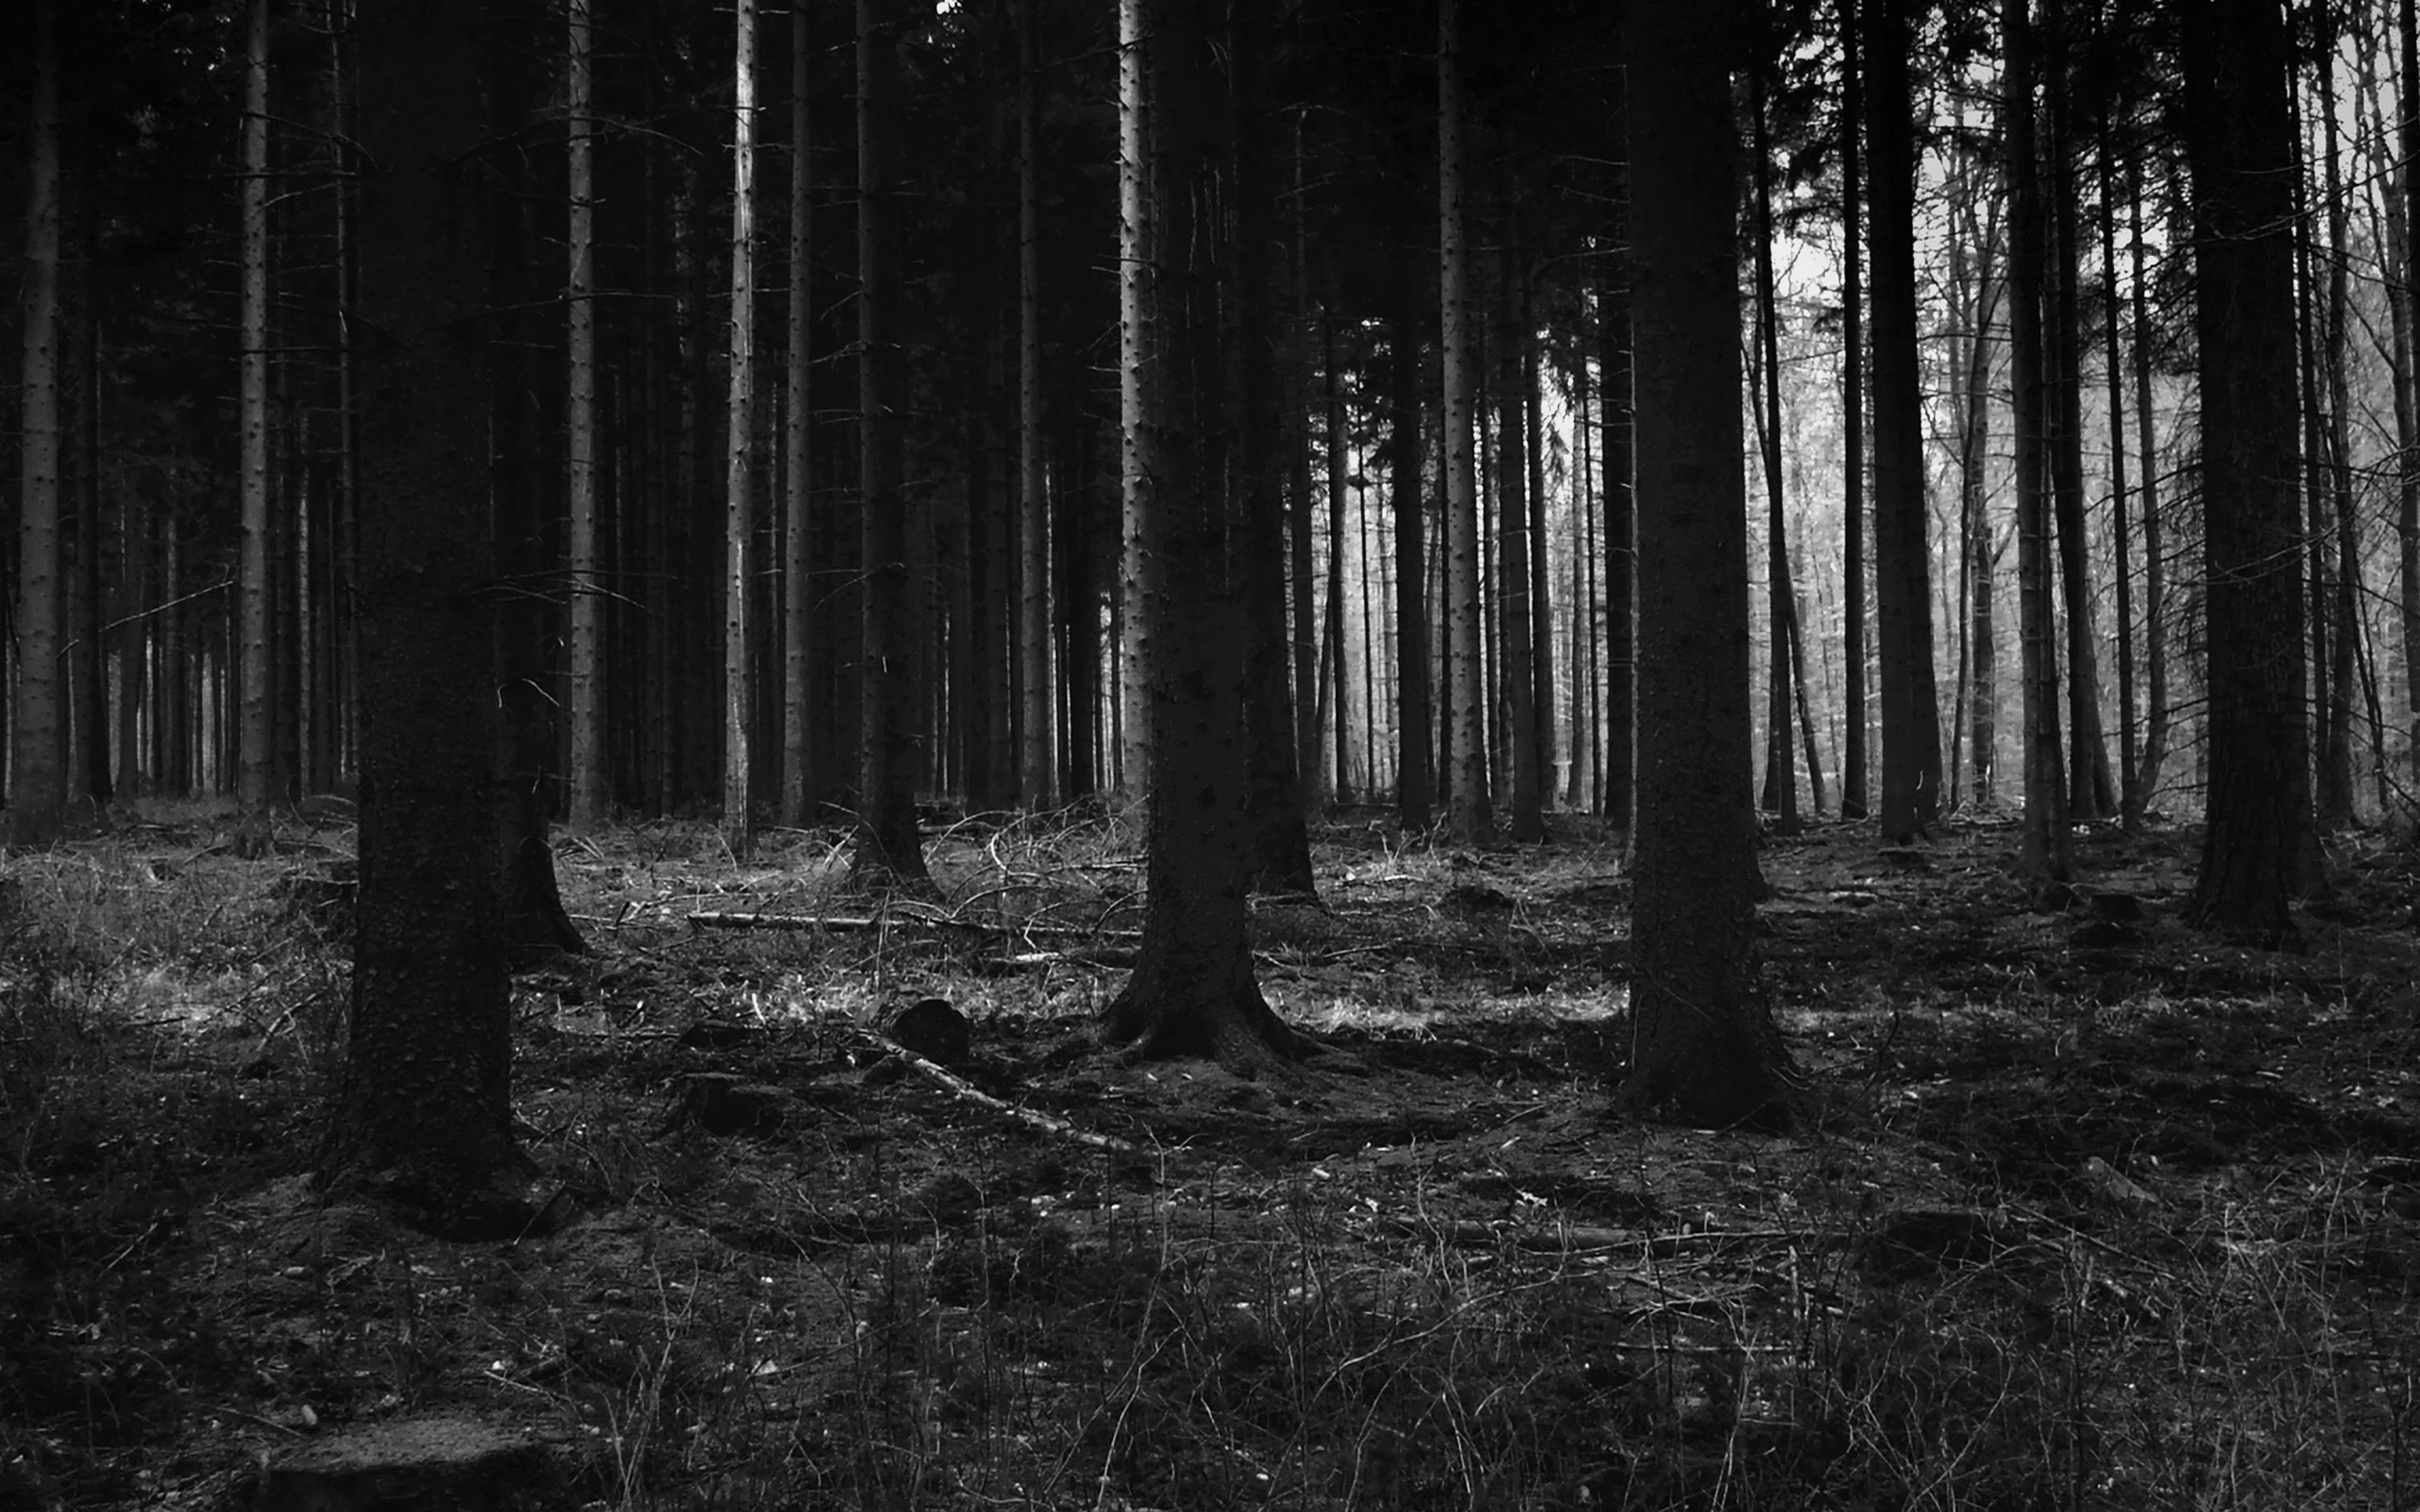 Download Wallpaper Night Forest - papers  Gallery-216658.jpg